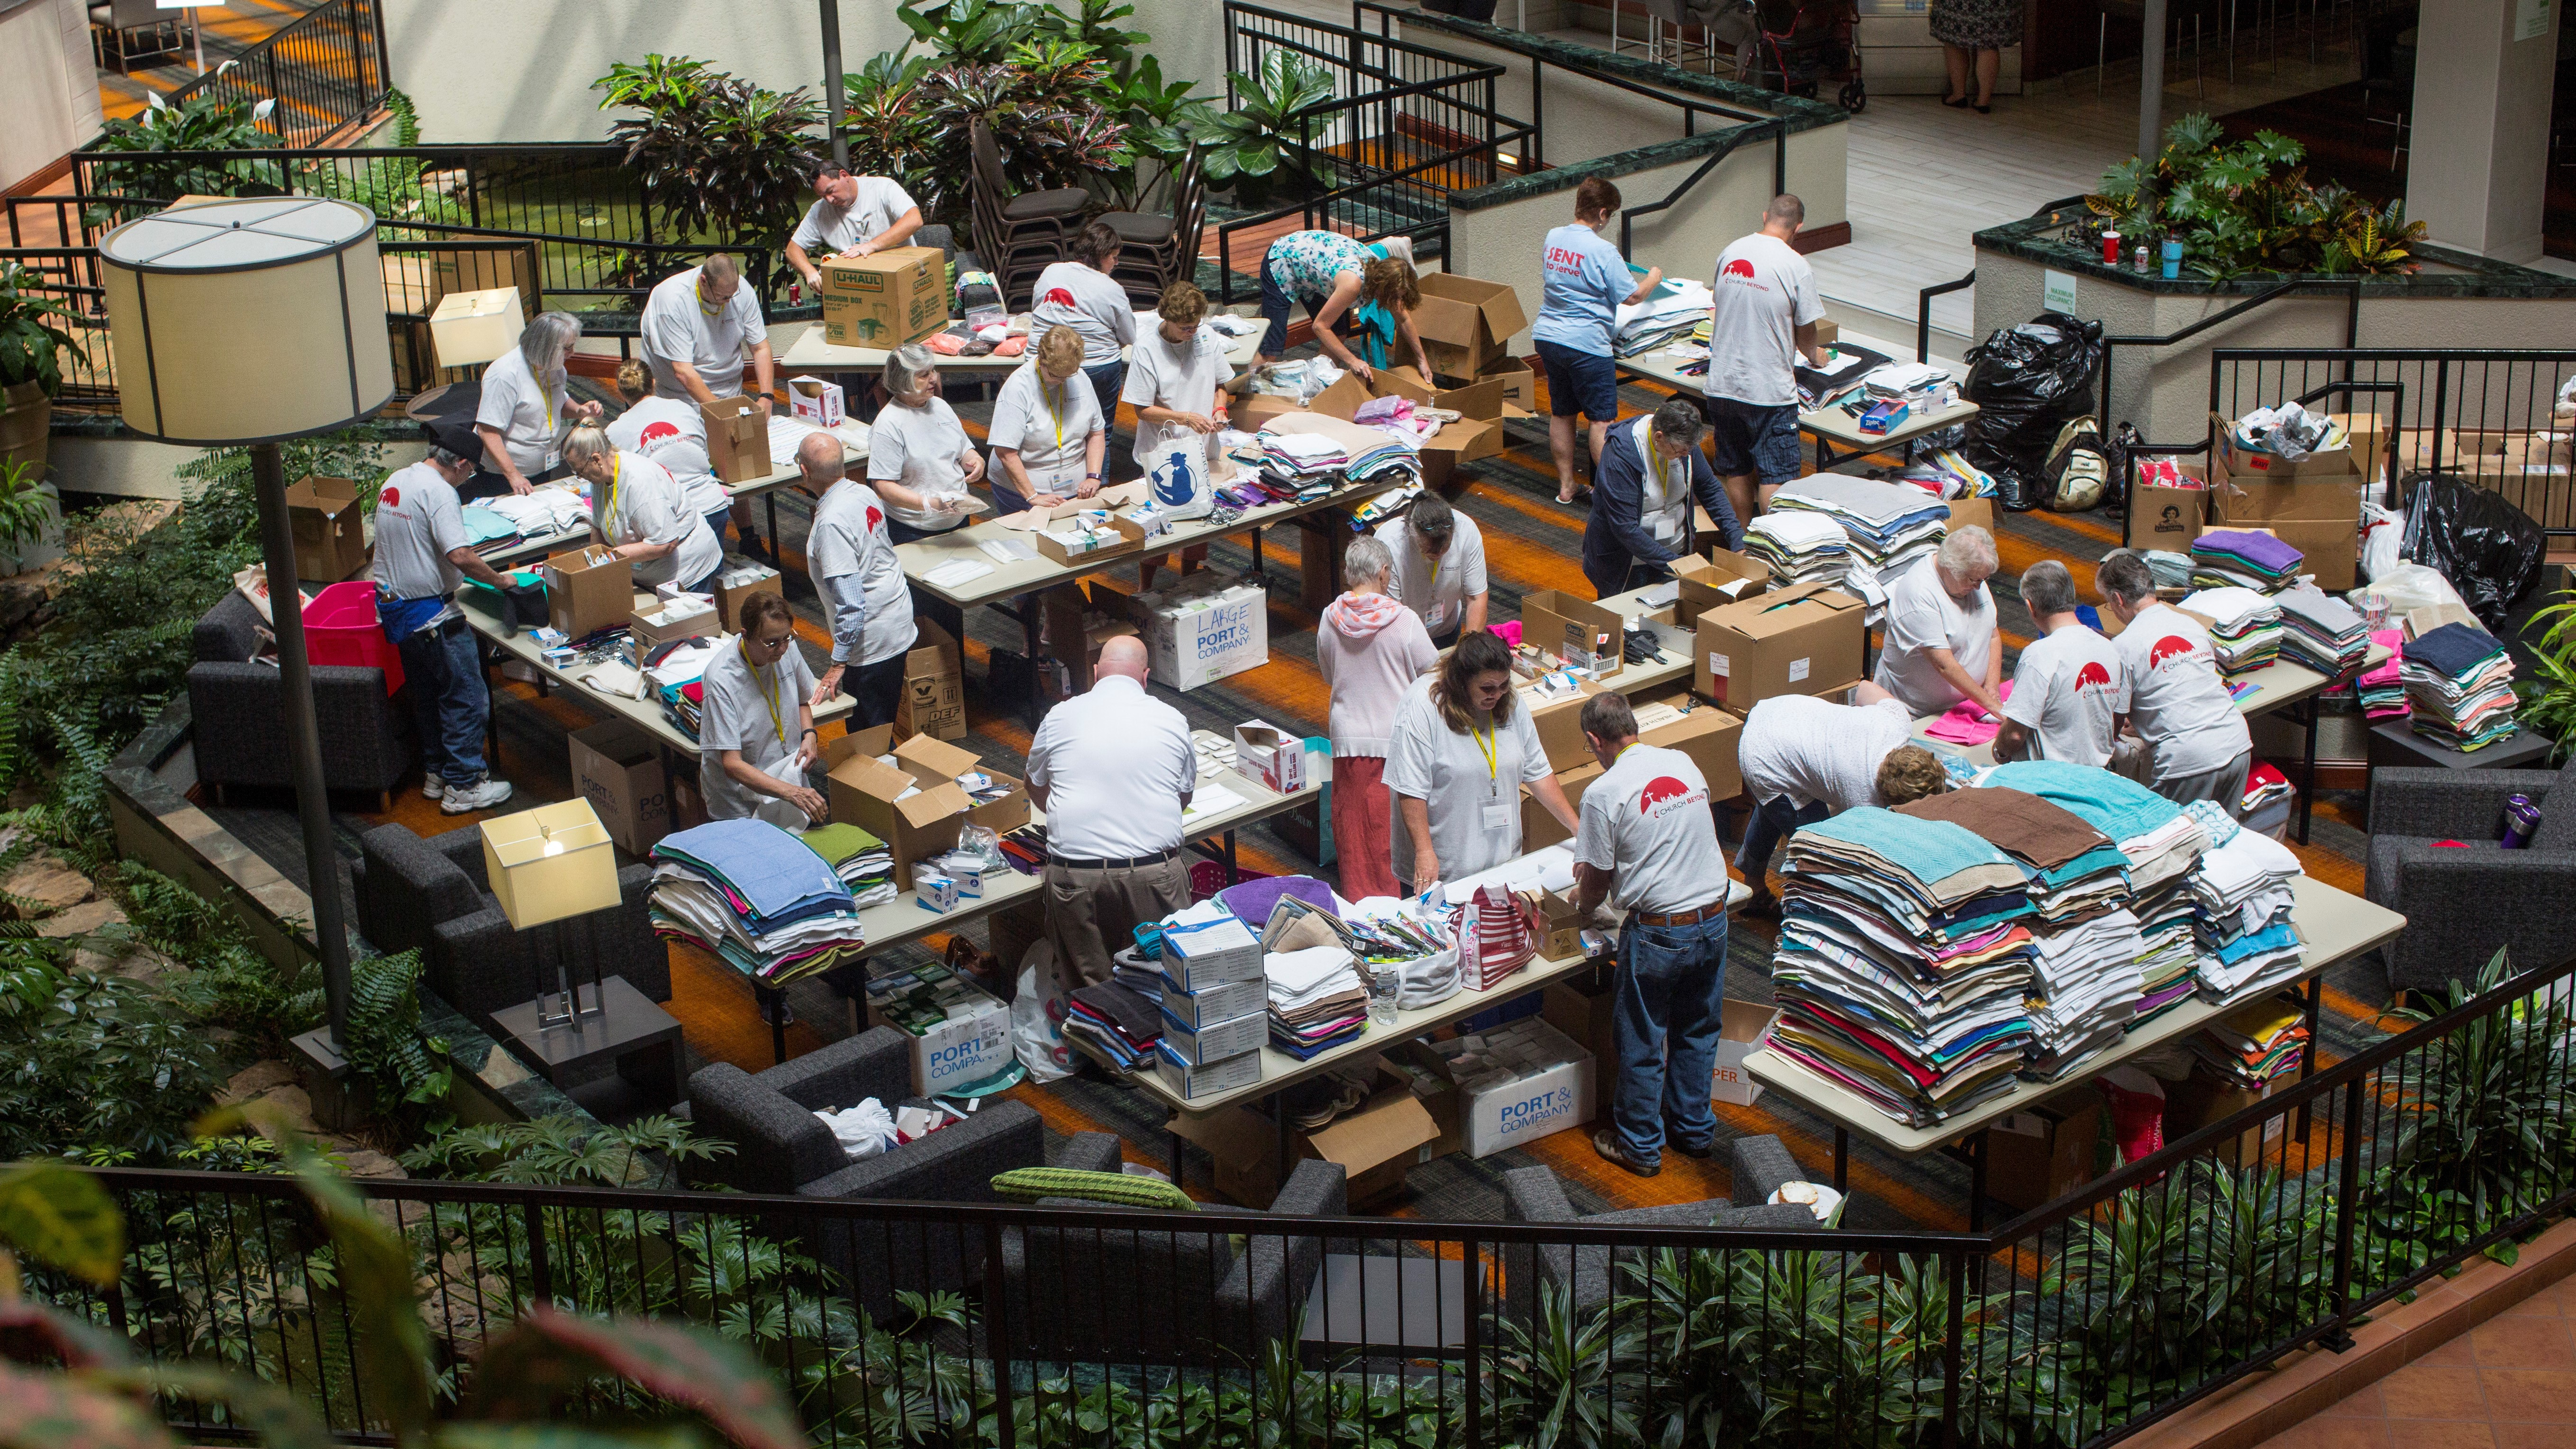 Health kits, now called hygiene kits, are assembled at the 2017 Kentucky Annual Conference for UMCOR. PHOTO: KATHLEEN BARRY